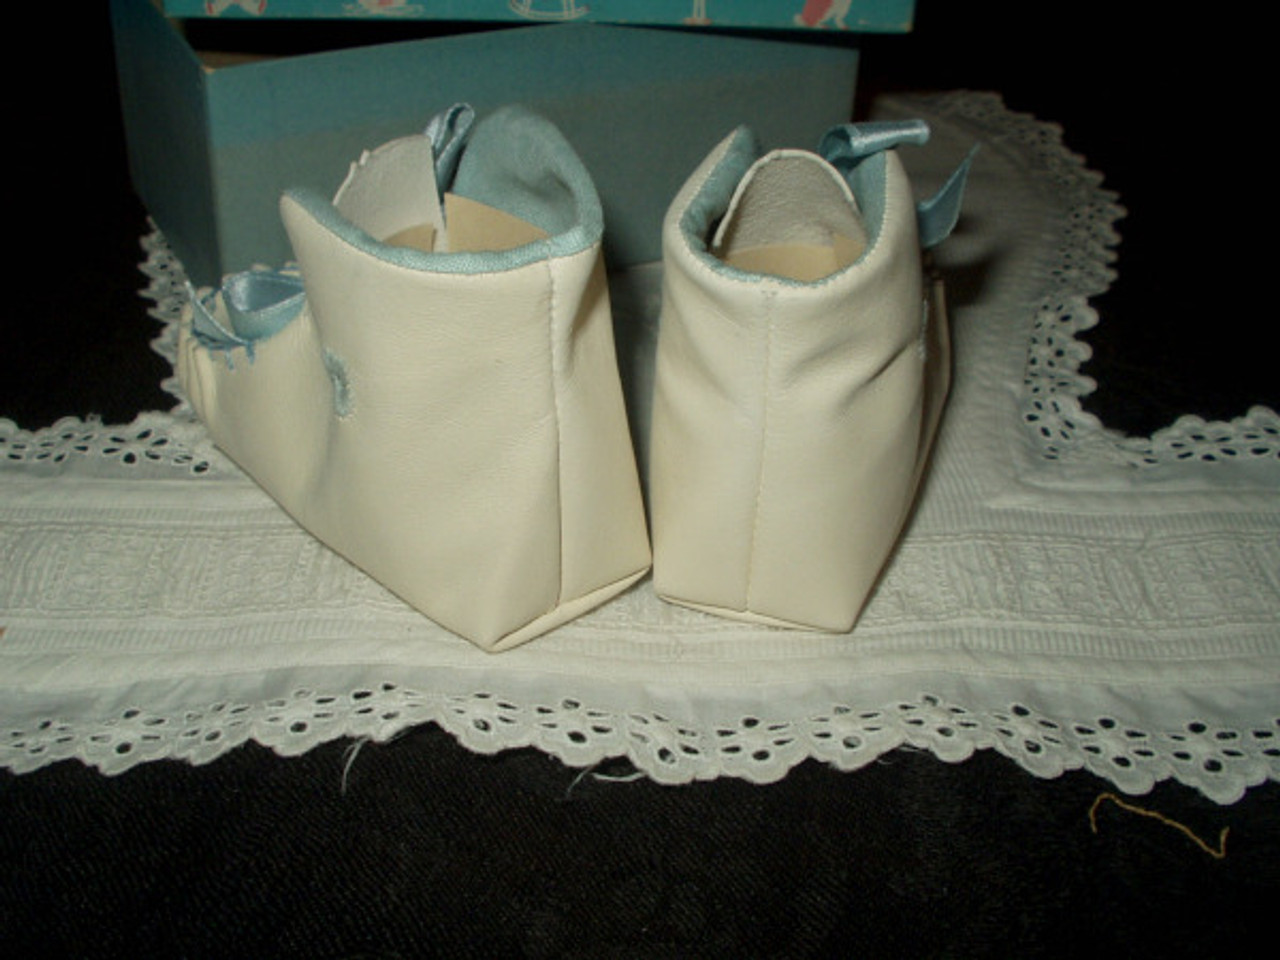 Antique Vintage Edwardian 1920 White Leather Baby Shoes Mint Condition In Box